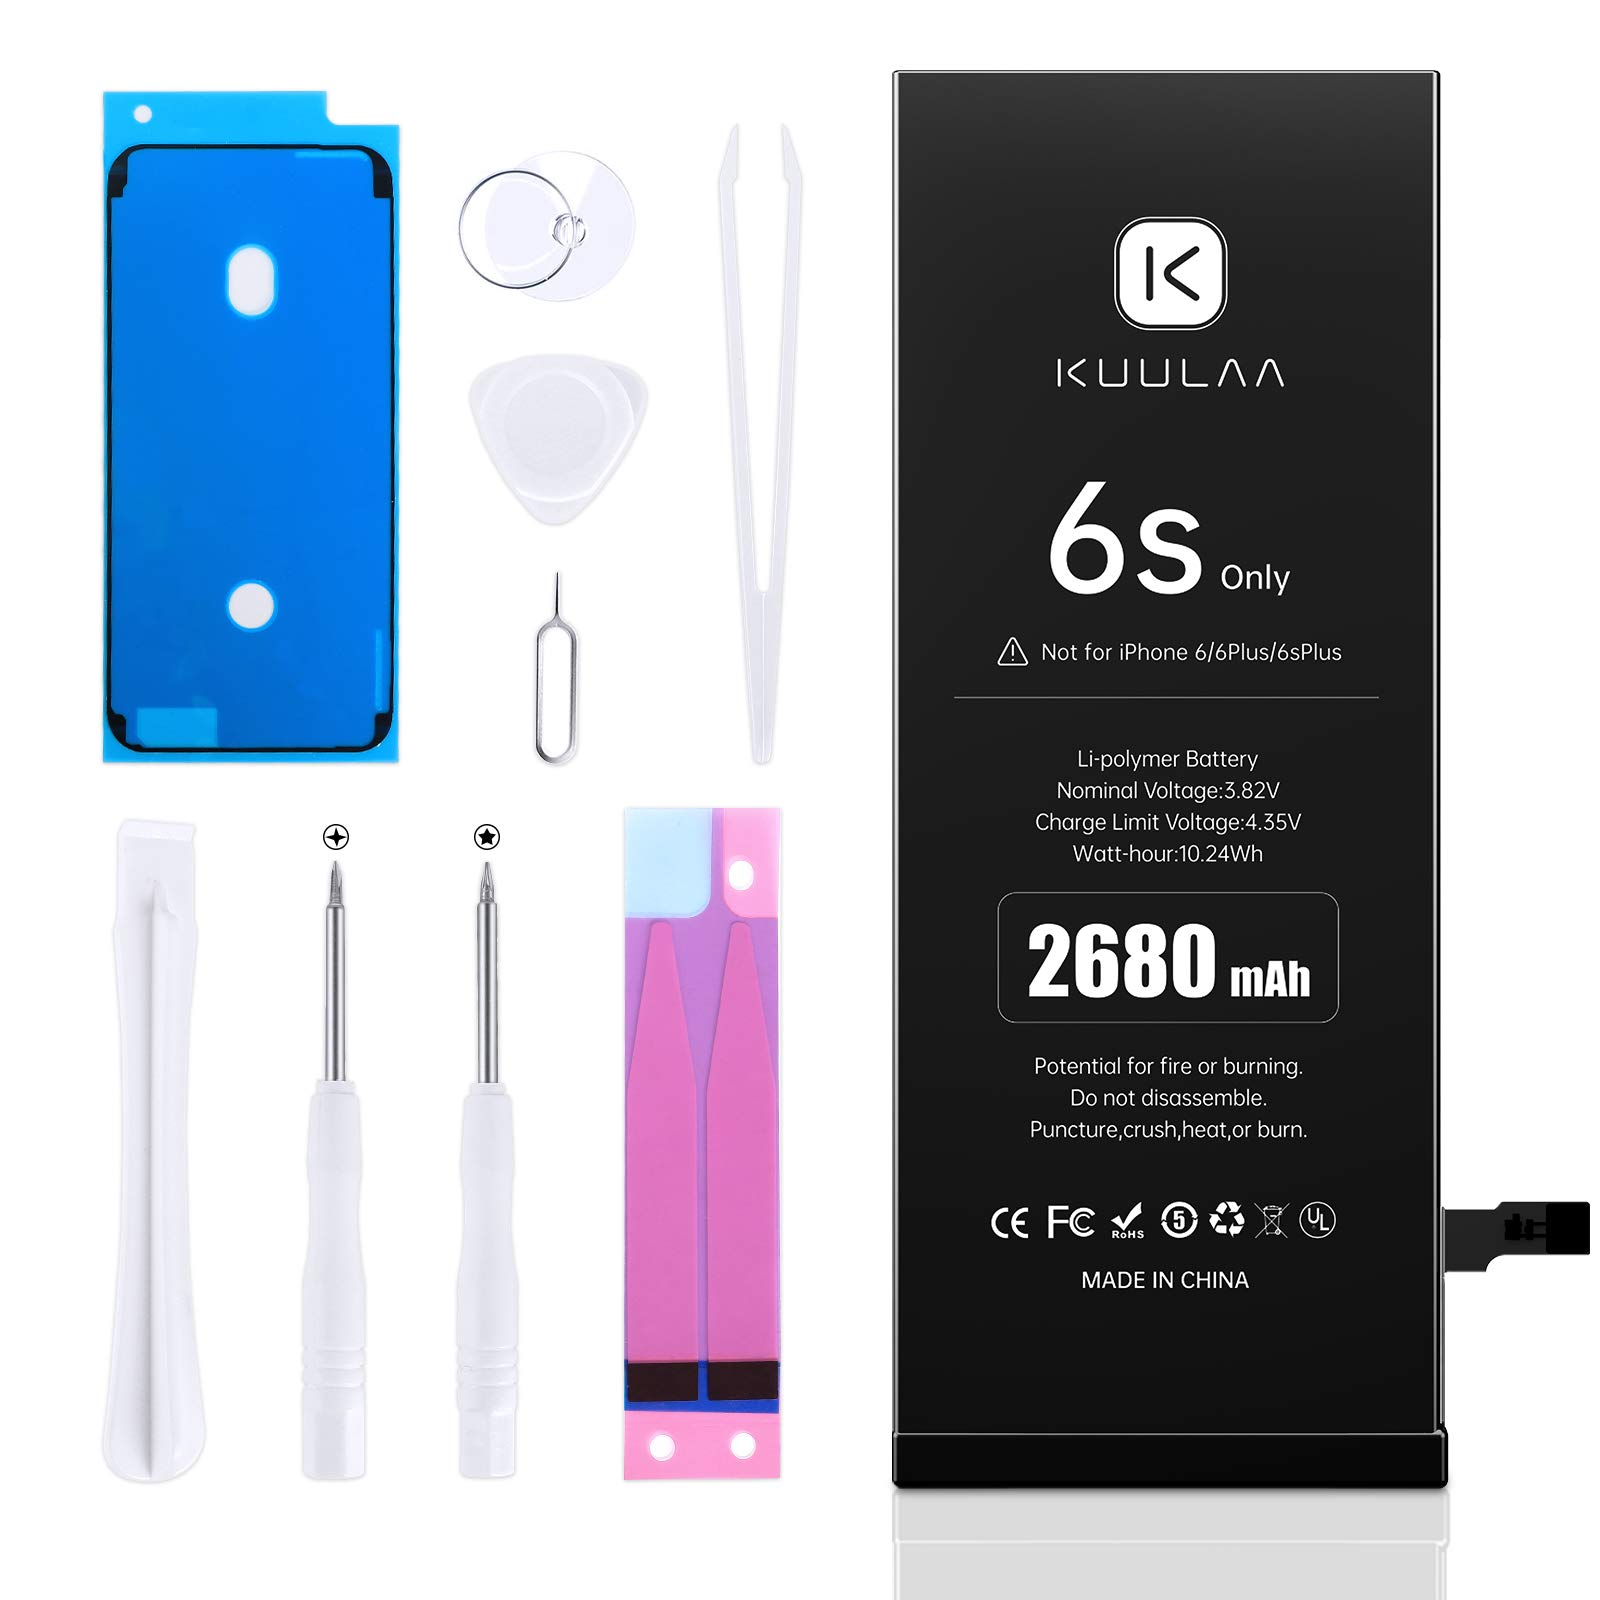 [2680mAh] Battery for iPhone 6S (2021 New Version), KUULAA New Upgrade 0 Cycle High Capacity Battery Replacement for iPhone 6S with Complete Professional Repair Tools Kits - 24 Months Service